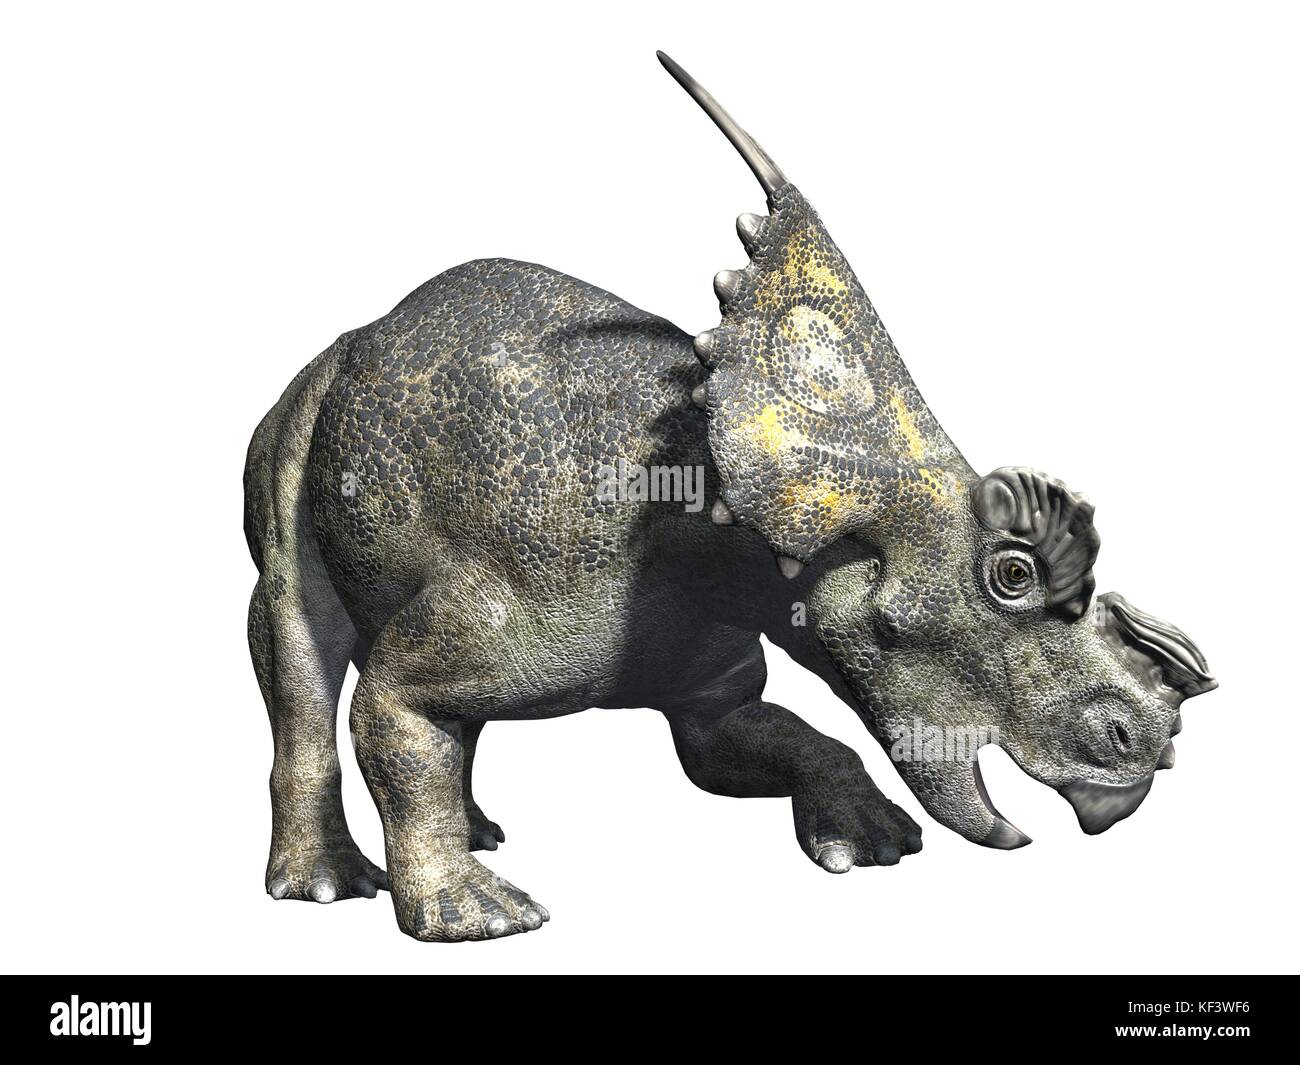 original 3d render of dinosaur Stock Photo